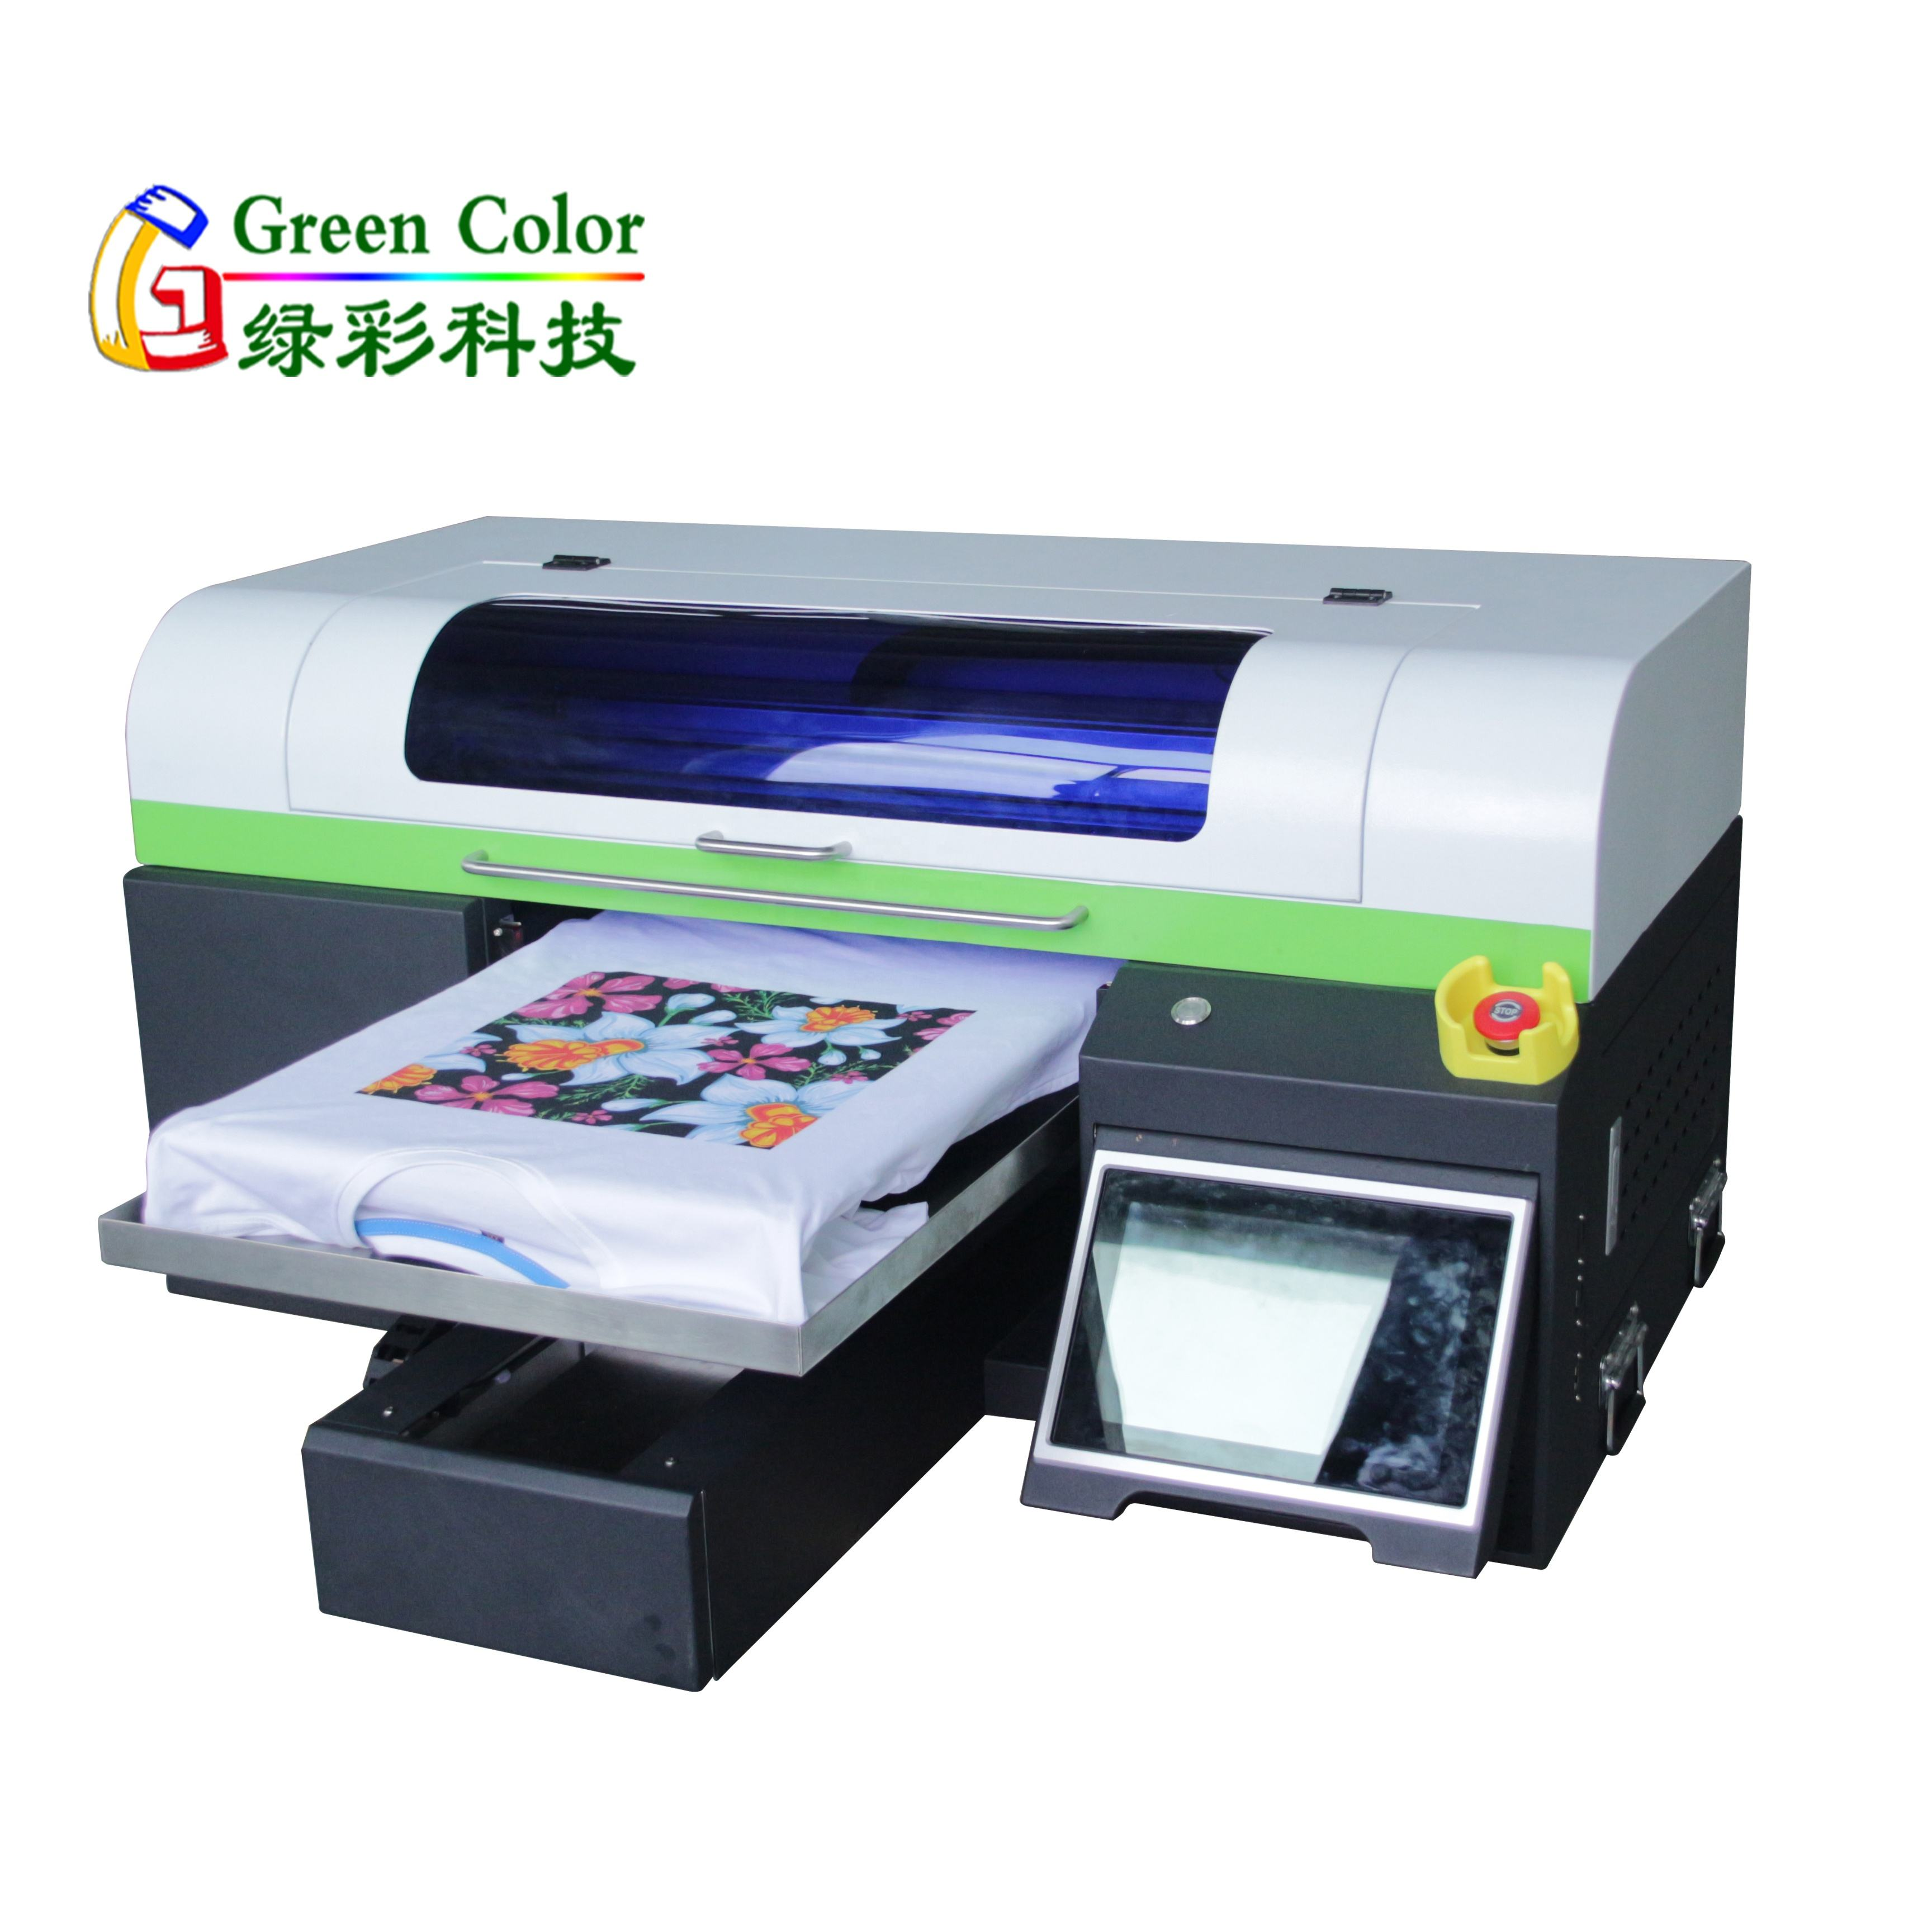 Direct to garment printer dtg automatic A2 size t-shirt printing machine fabric printing machine with double printhead-4720